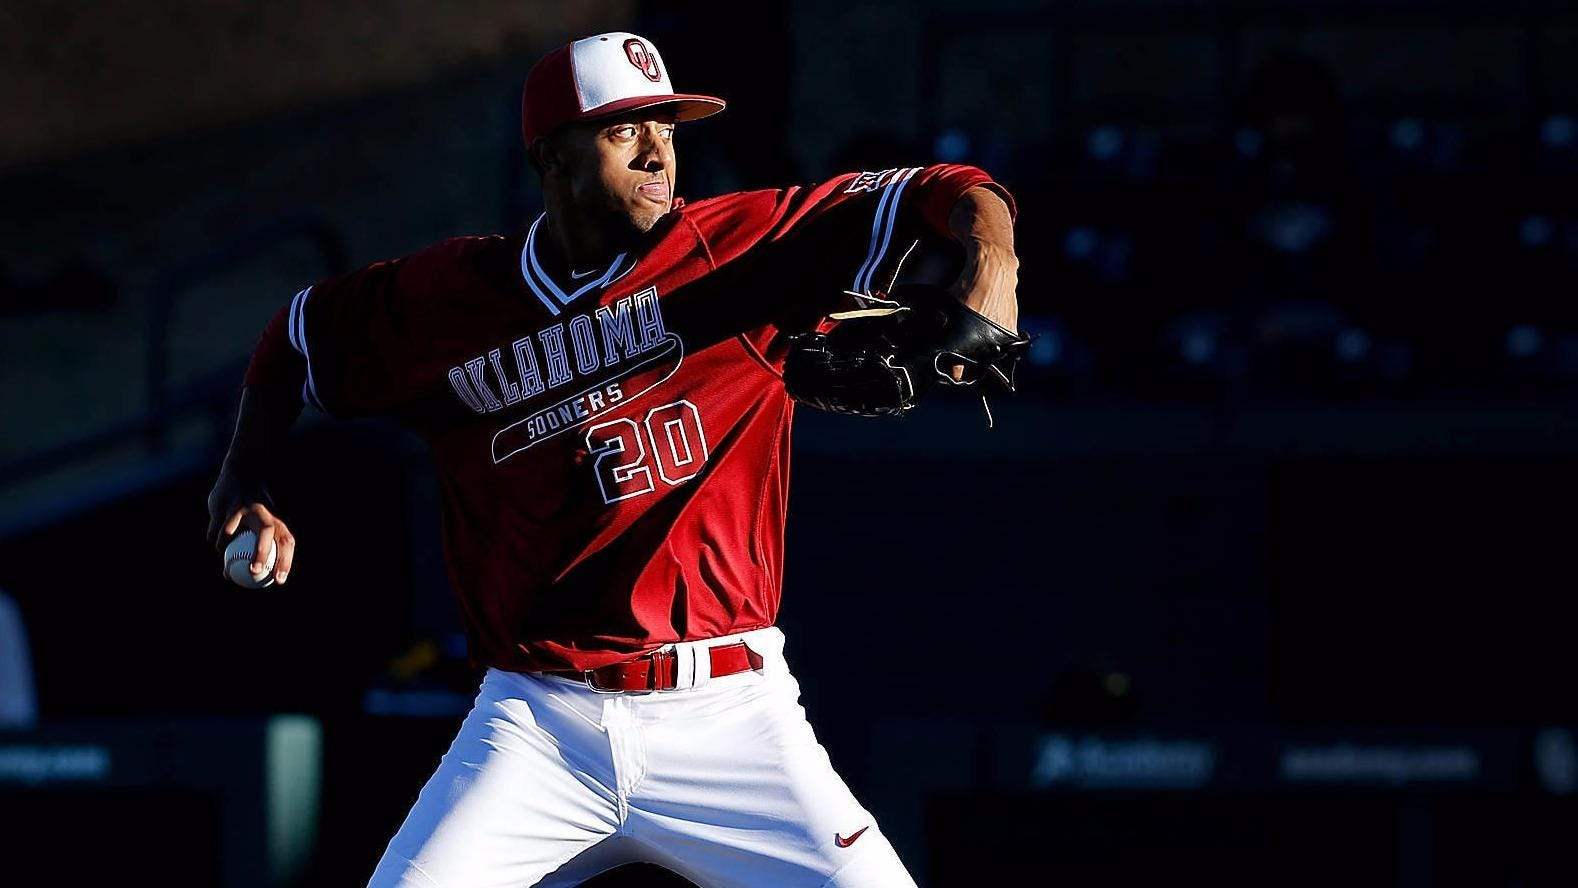 OU Baseball: Sooners Storm Back With Seven-Run Seventh